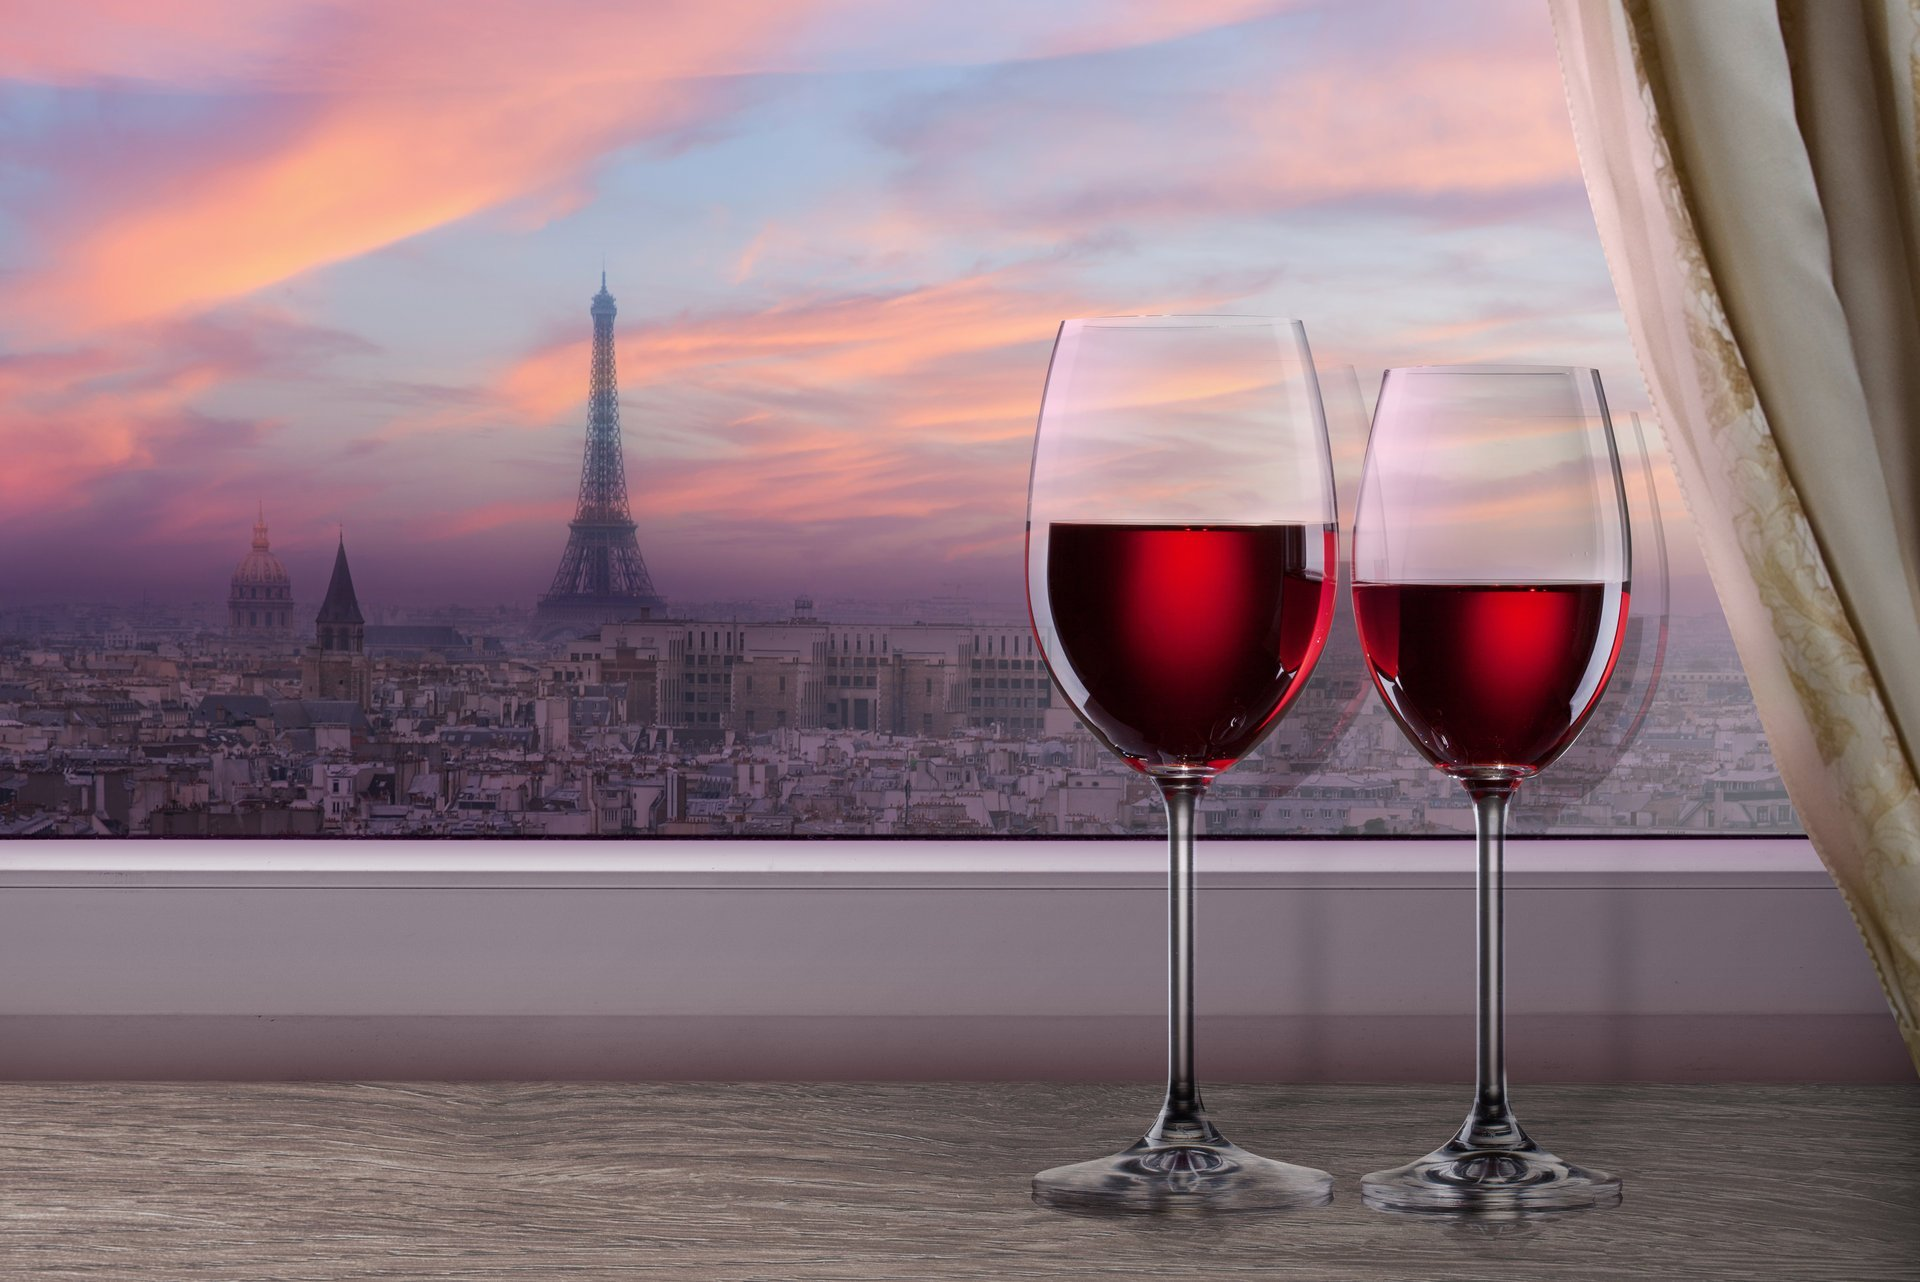 window-town-paris-eiffel-tower-the-window-sill-wine-red-glasses-shower-curtain-night